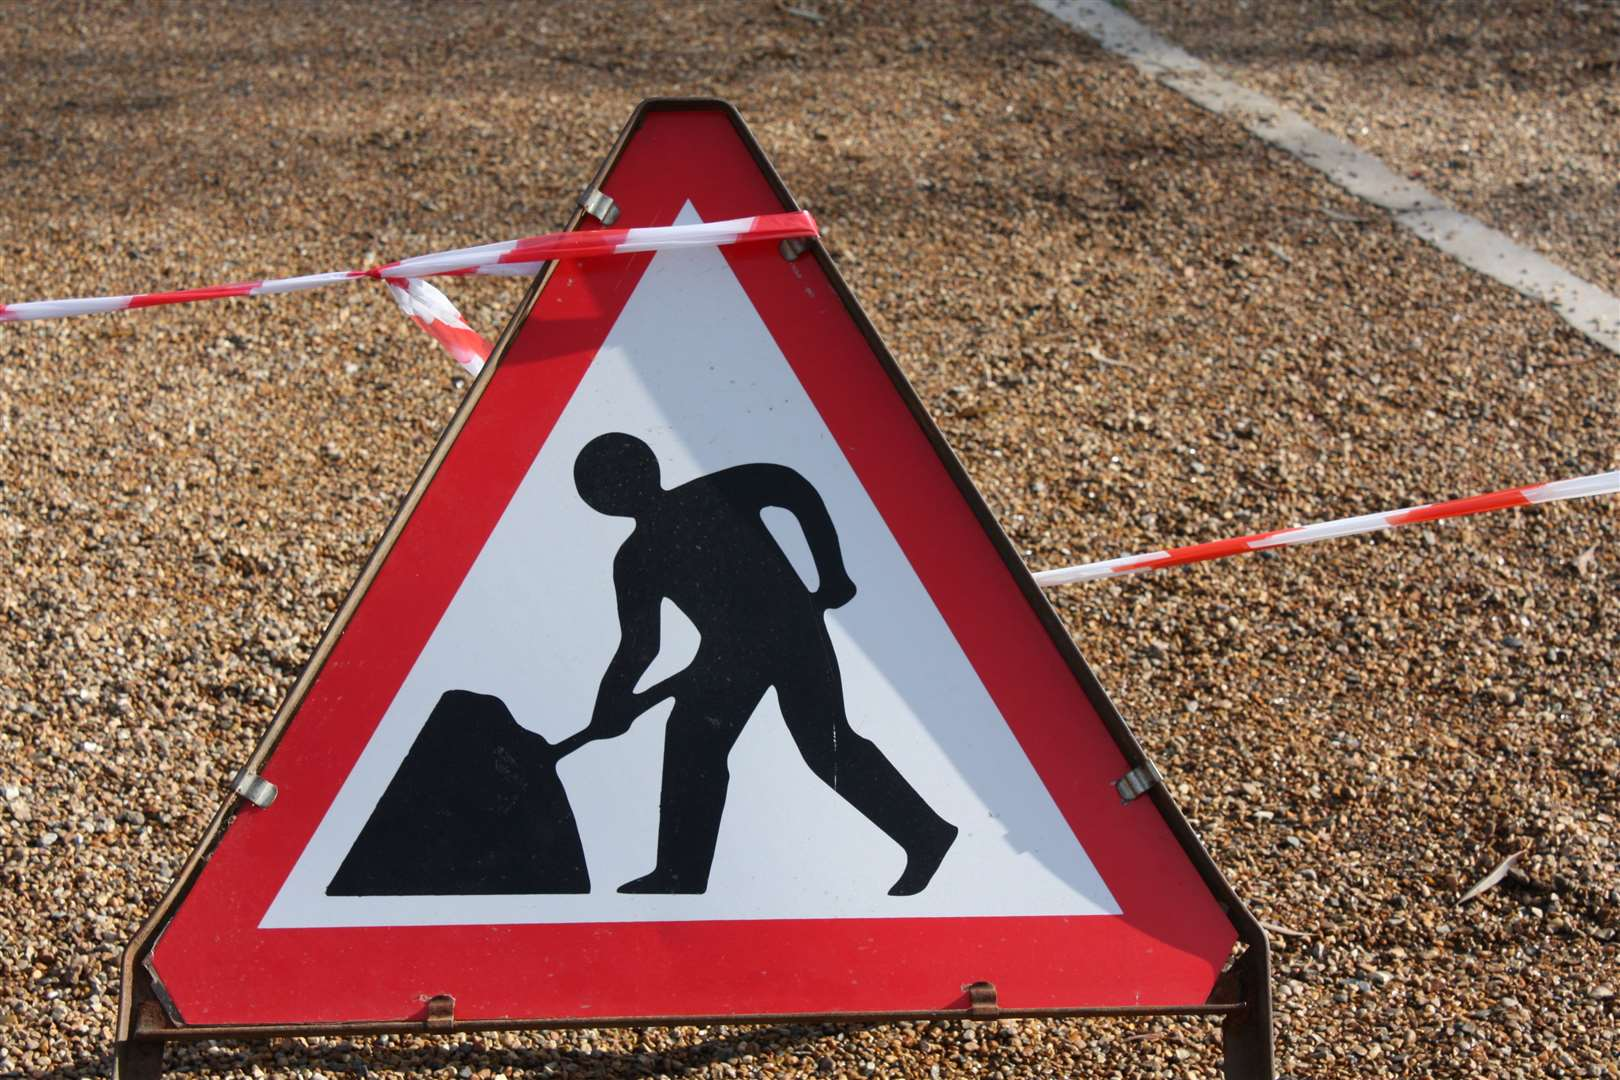 Roadworks are due to start on Monday.